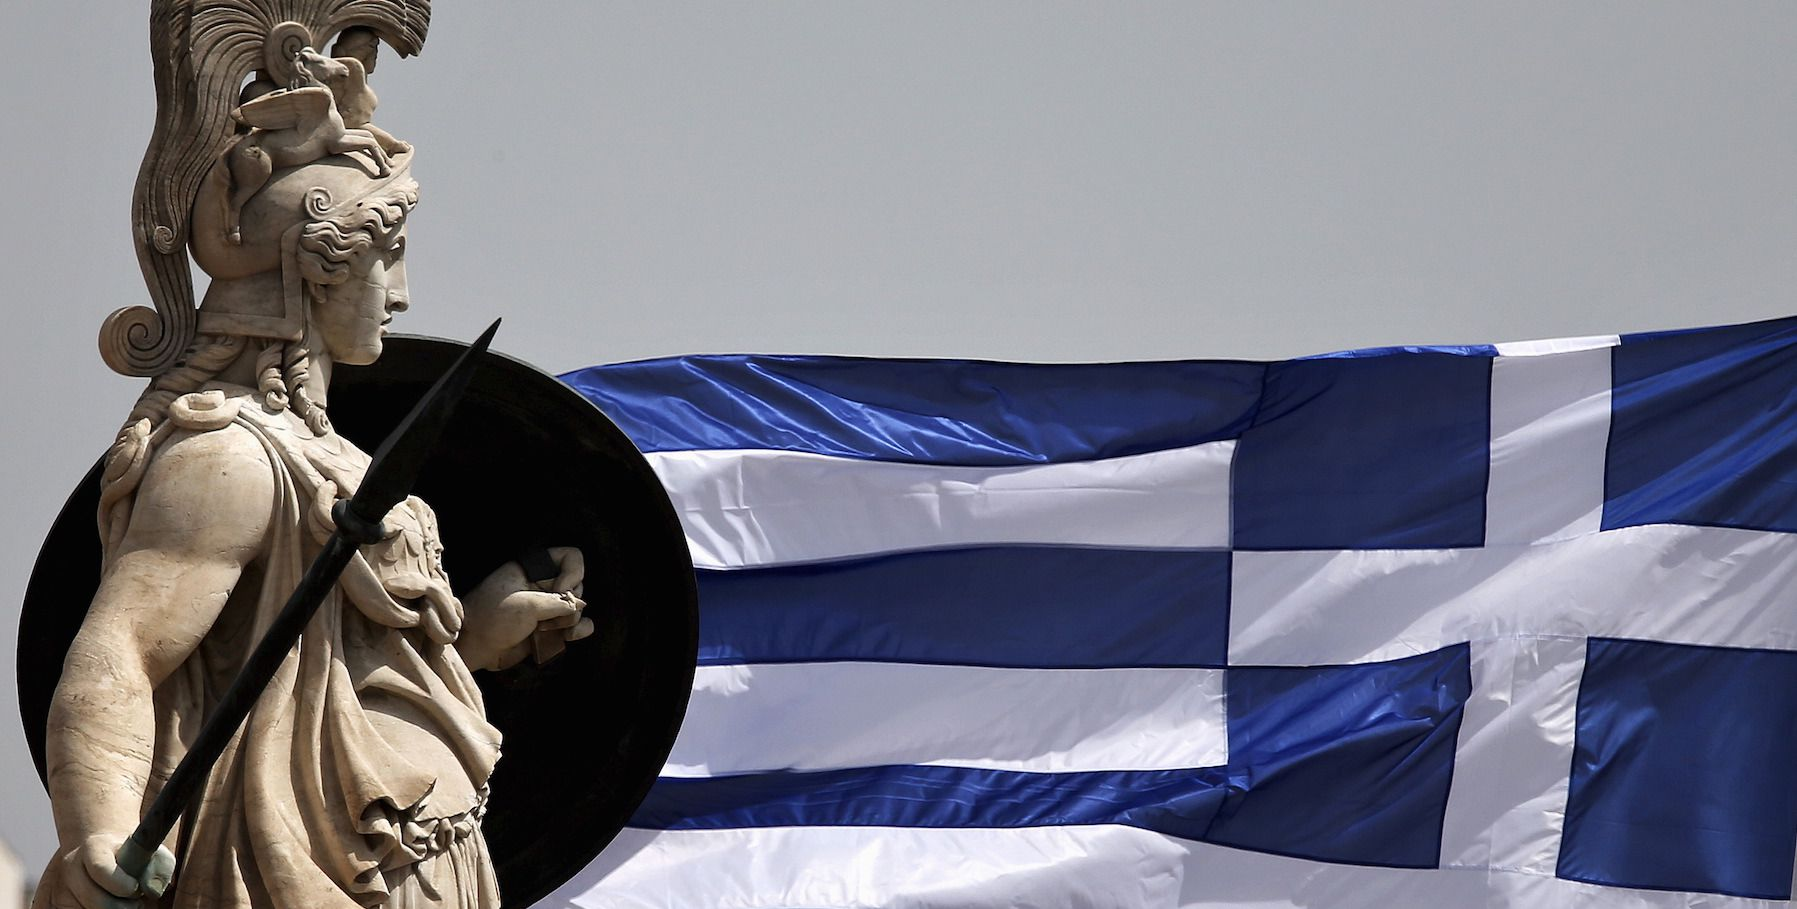 A Greek national flag flutters next to a statue of ancient Greek goddess Athena, in Athens May 21, 2015. Greek Finance Minister Yanis Varoufakis has raised a fresh furore by telling a newspaper that he taped a confidential meeting of euro zone finance ministers, drawing criticism that he was undermining Greece's efforts to secure aid from lenders. REUTERS/Alkis Konstantinidis - RTX1DYTP